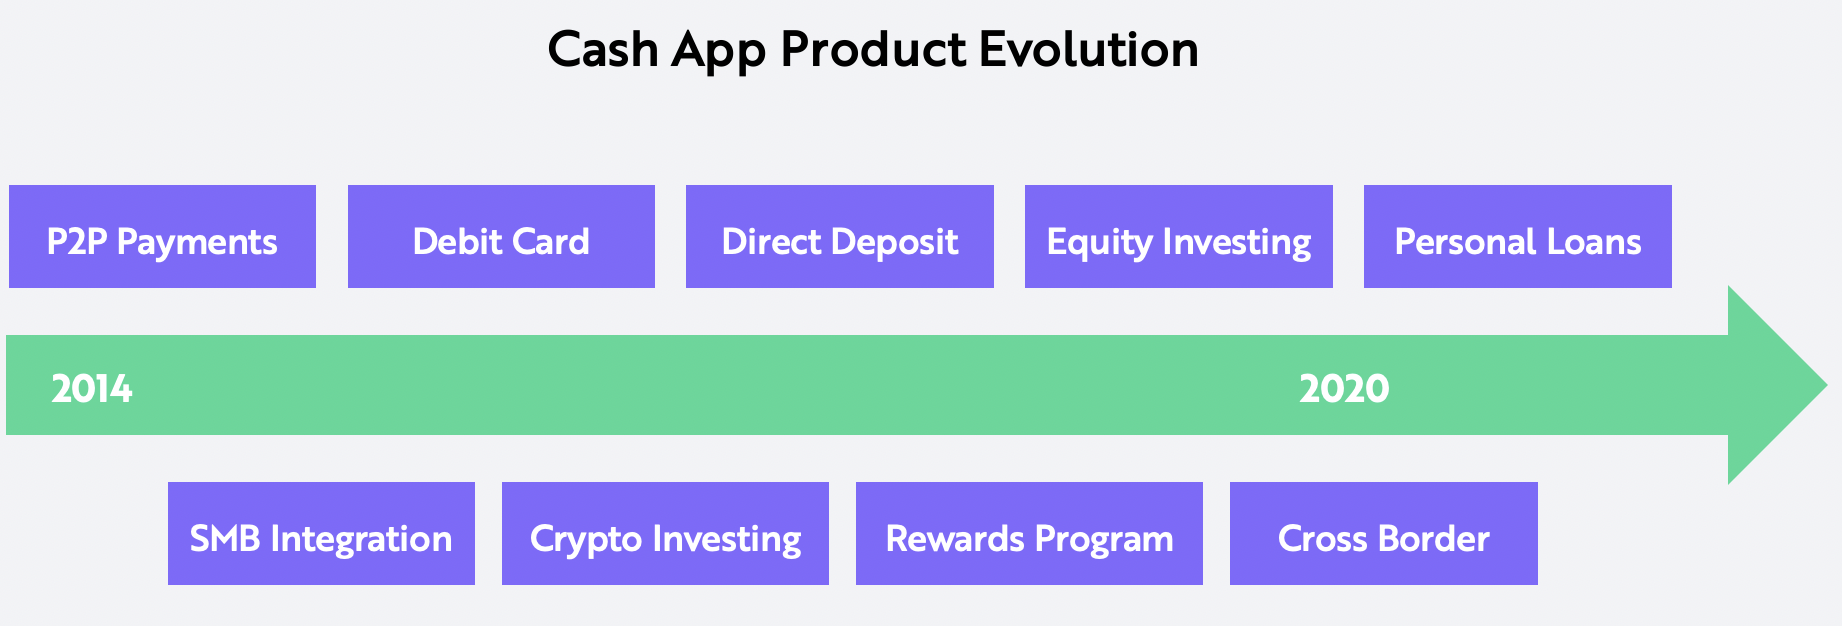 Square Valuation Cash App Product Evolution